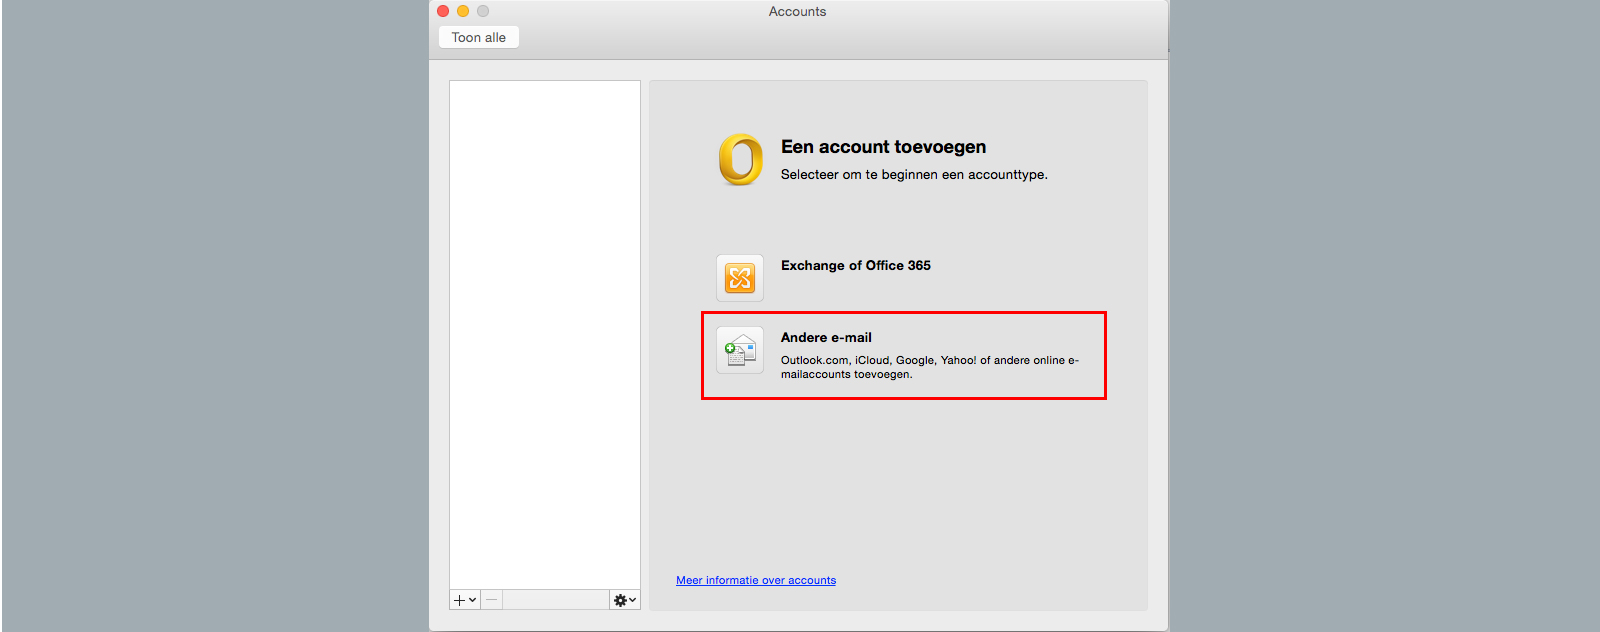 account toevoegen outlook 2011 for mac andere e-mail